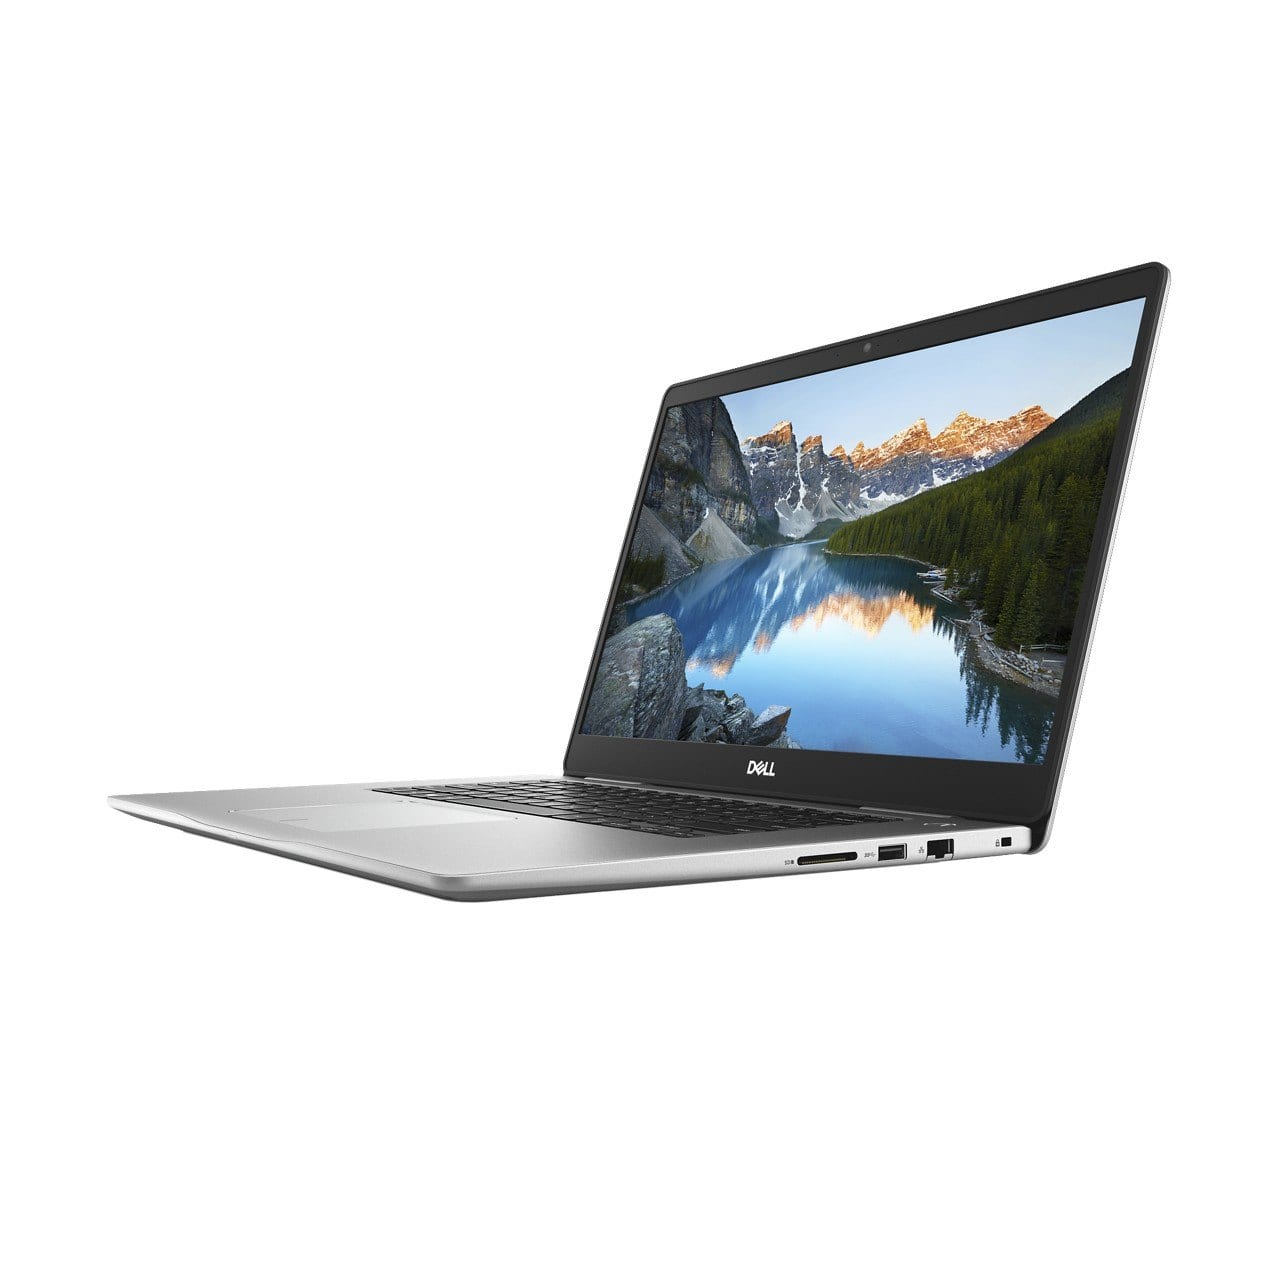 Dell Inspiron 15 7000 i5 8GB 256 GB SSD Laptop $599 99 AC + Free